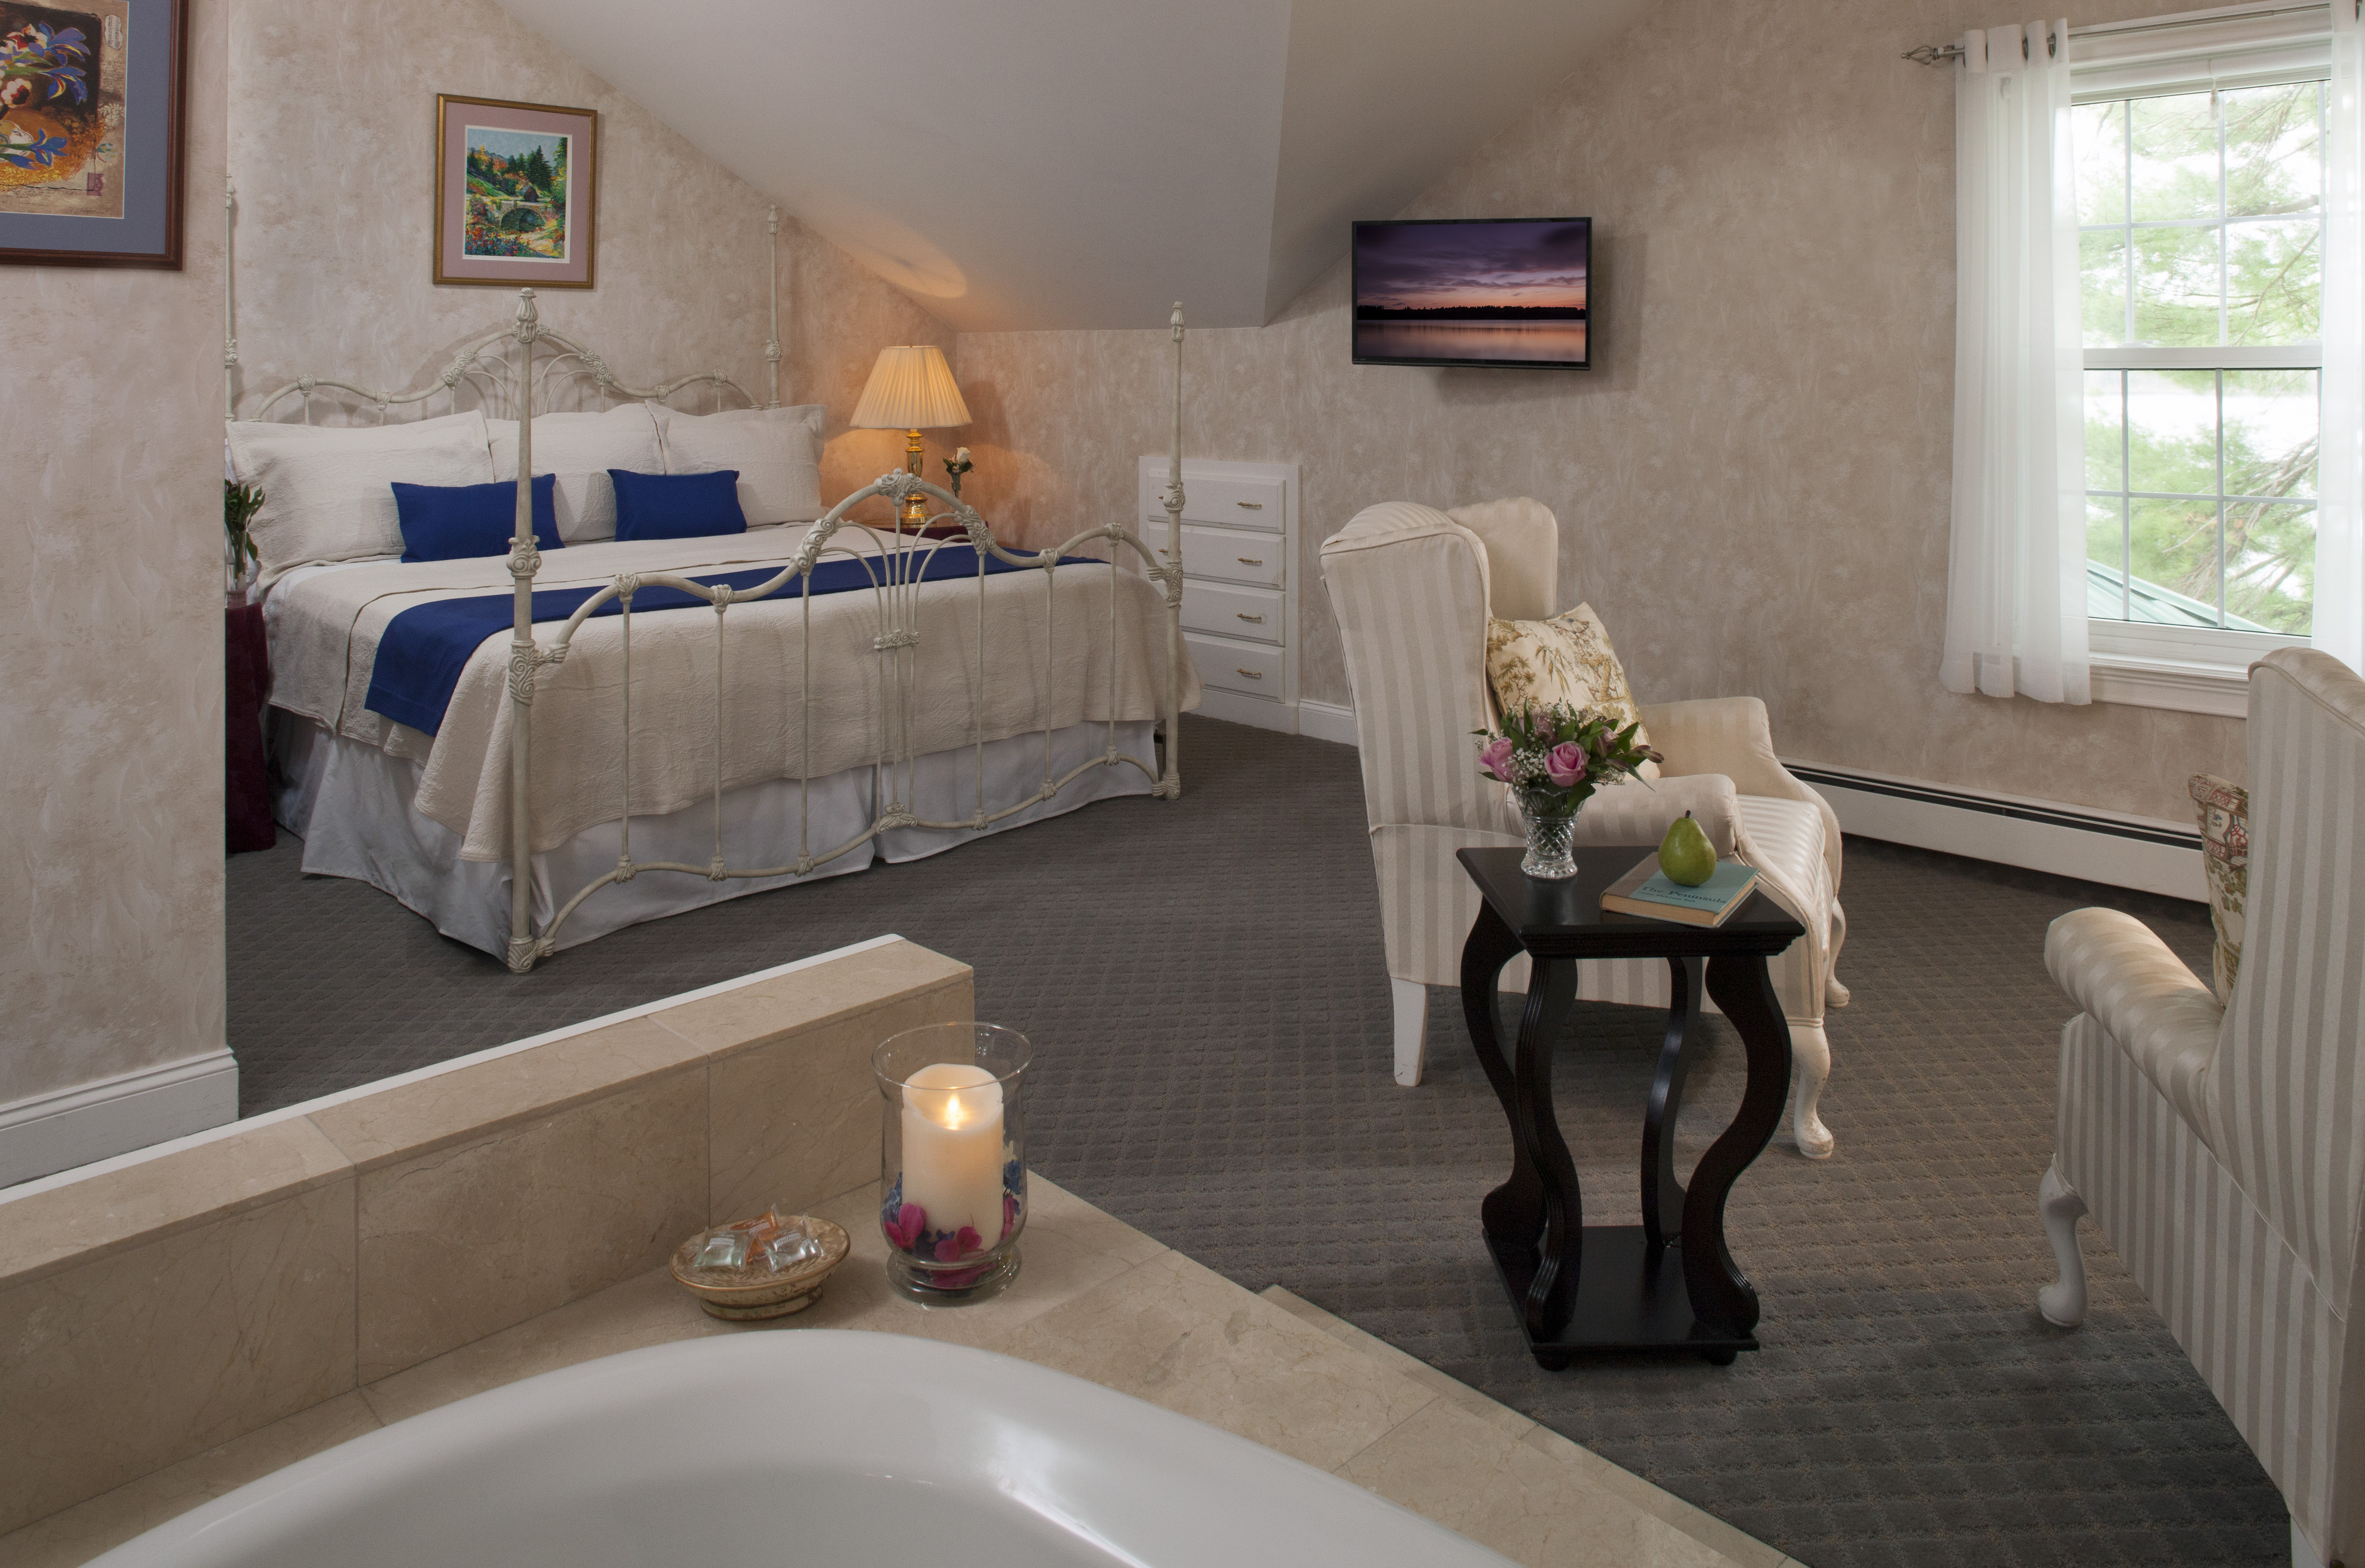 The Mount Katahdin Suite, with it's in-room spa is just the place to spend your get-away-from-it-all with that special person.